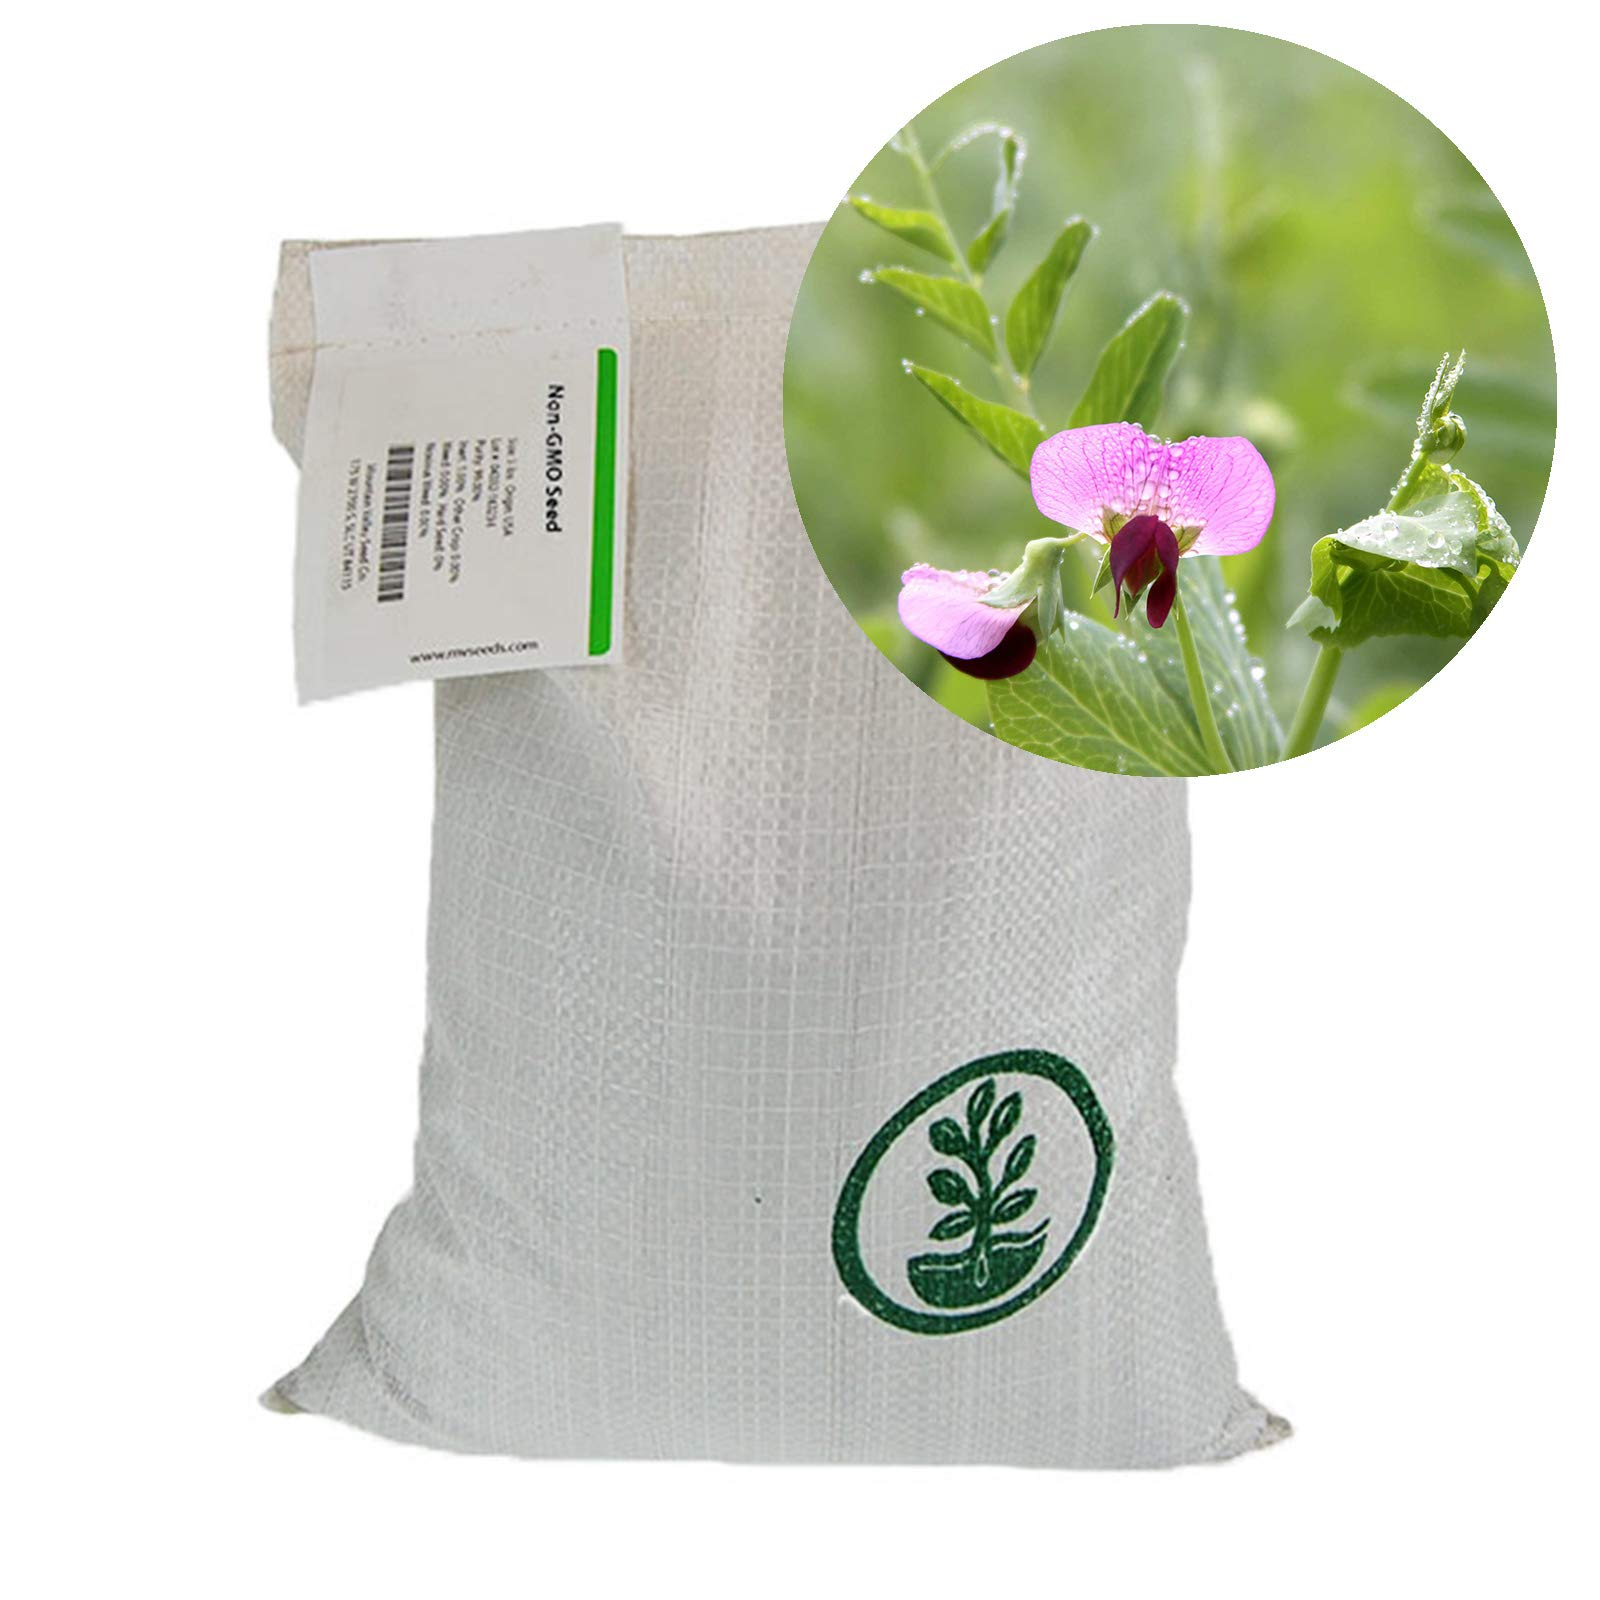 Austrian Field Pea Cover Crop Seeds - 50 Lbs Bulk - Nitrogen Fixing Viny Legume Cover Crop by Mountain Valley Seed Company